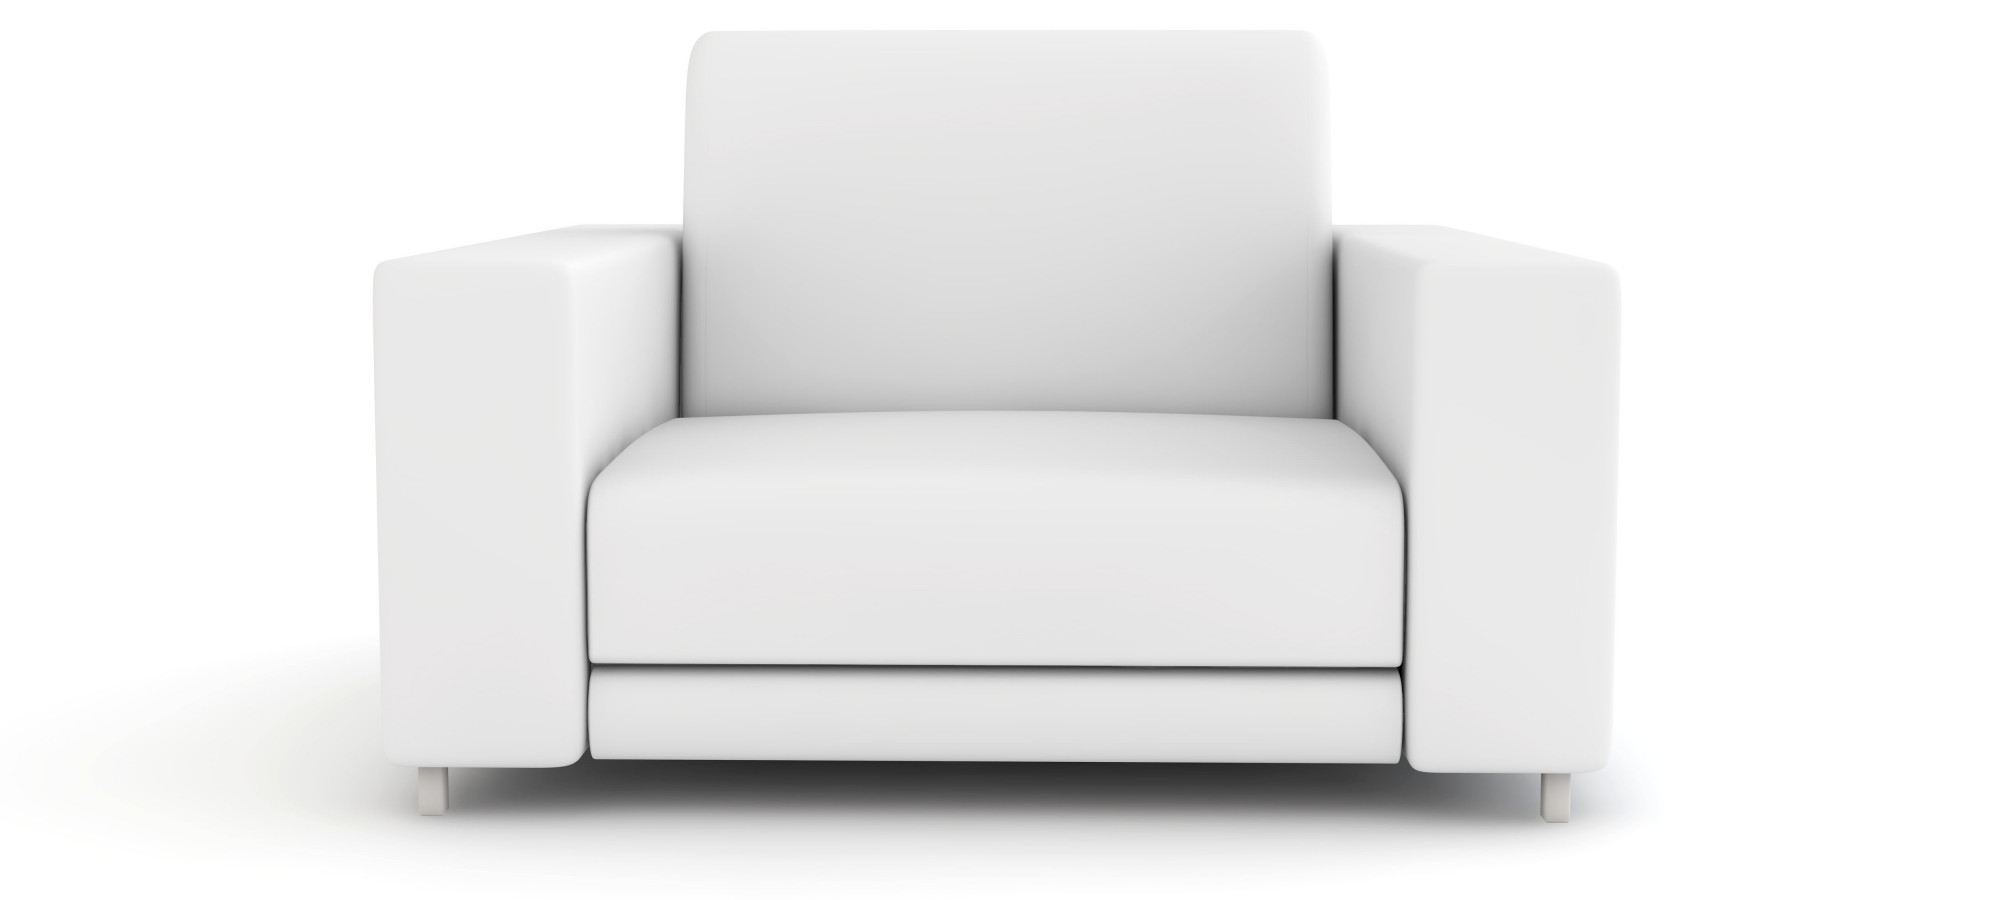 clean white sofa